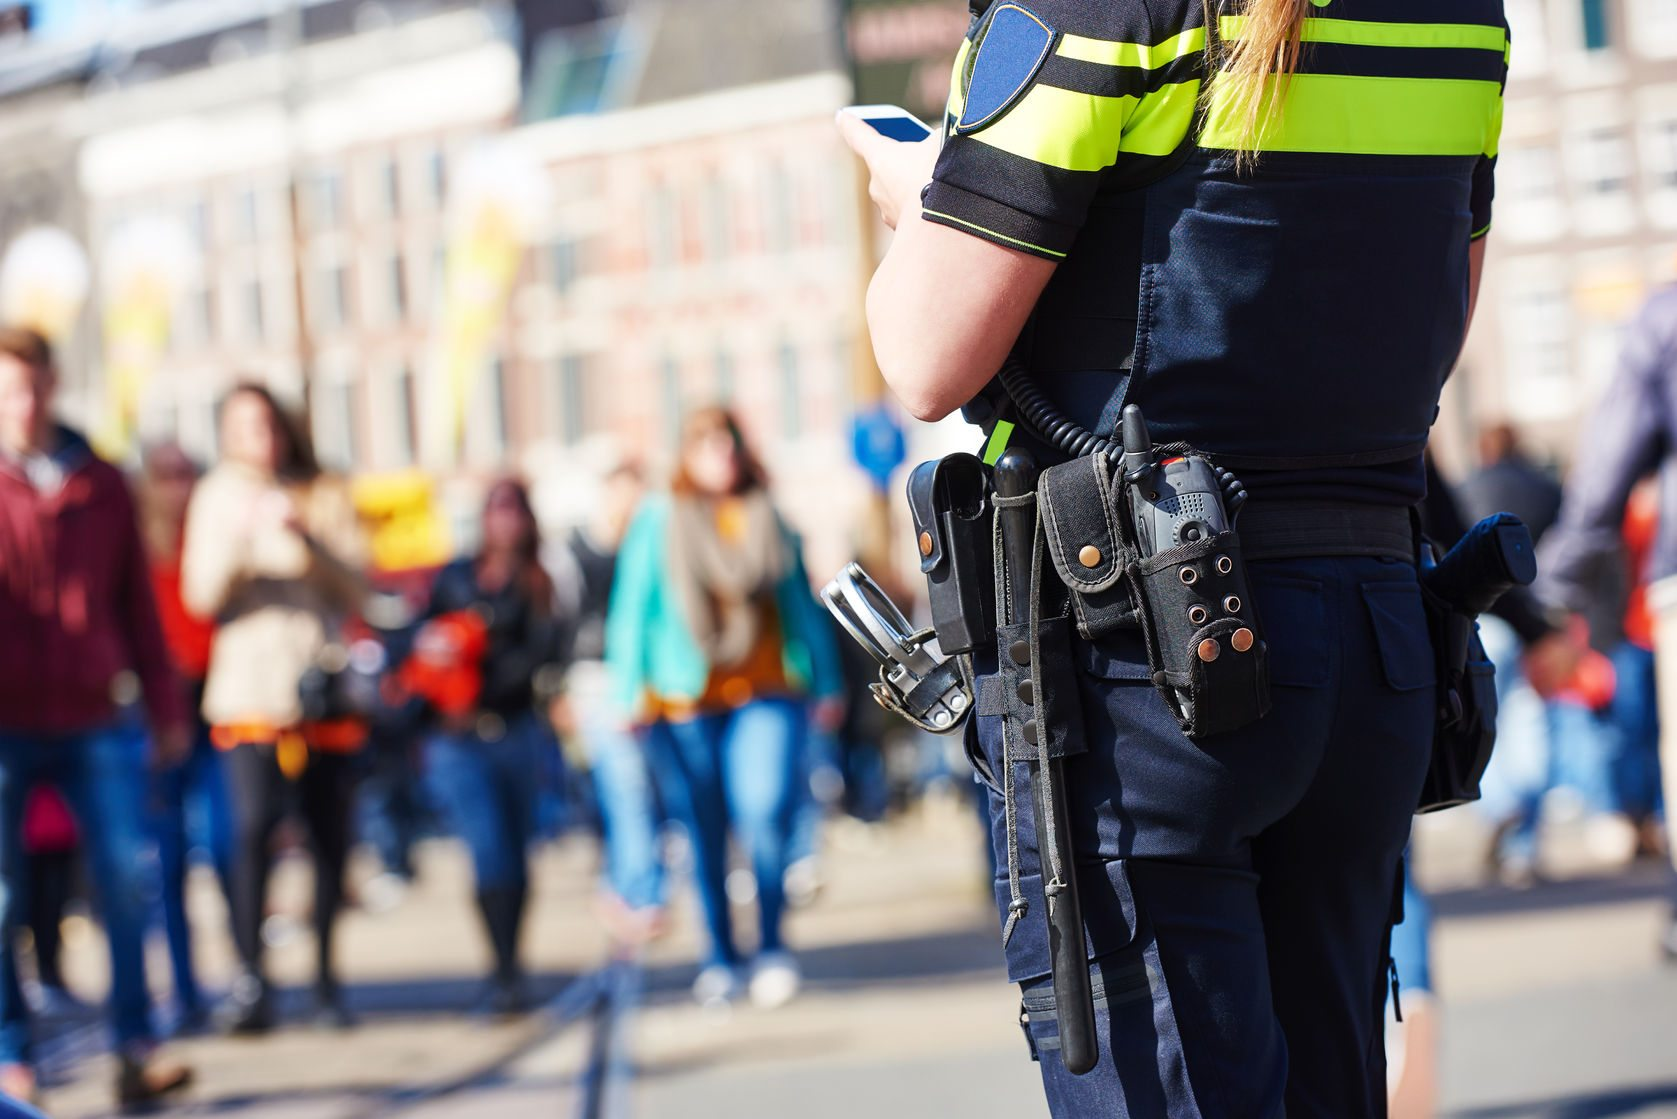 Public Safety  >> Public Safety Iot Using Data To Make Cities Safer